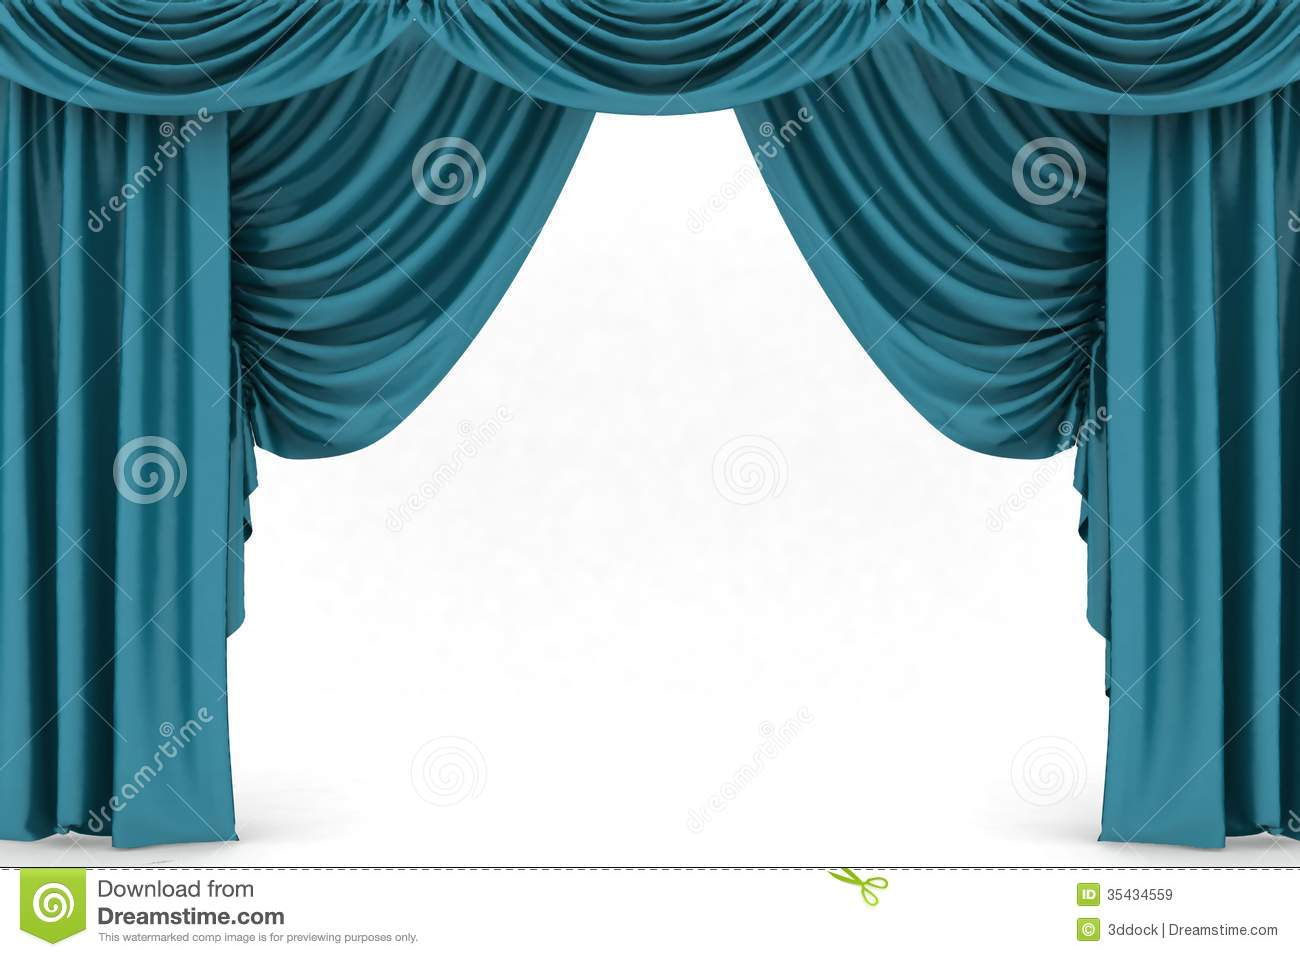 Open theater drapes or stage curtains royalty free stock image image - Royalty Free Stock Photo Background Blue Curtain Theater